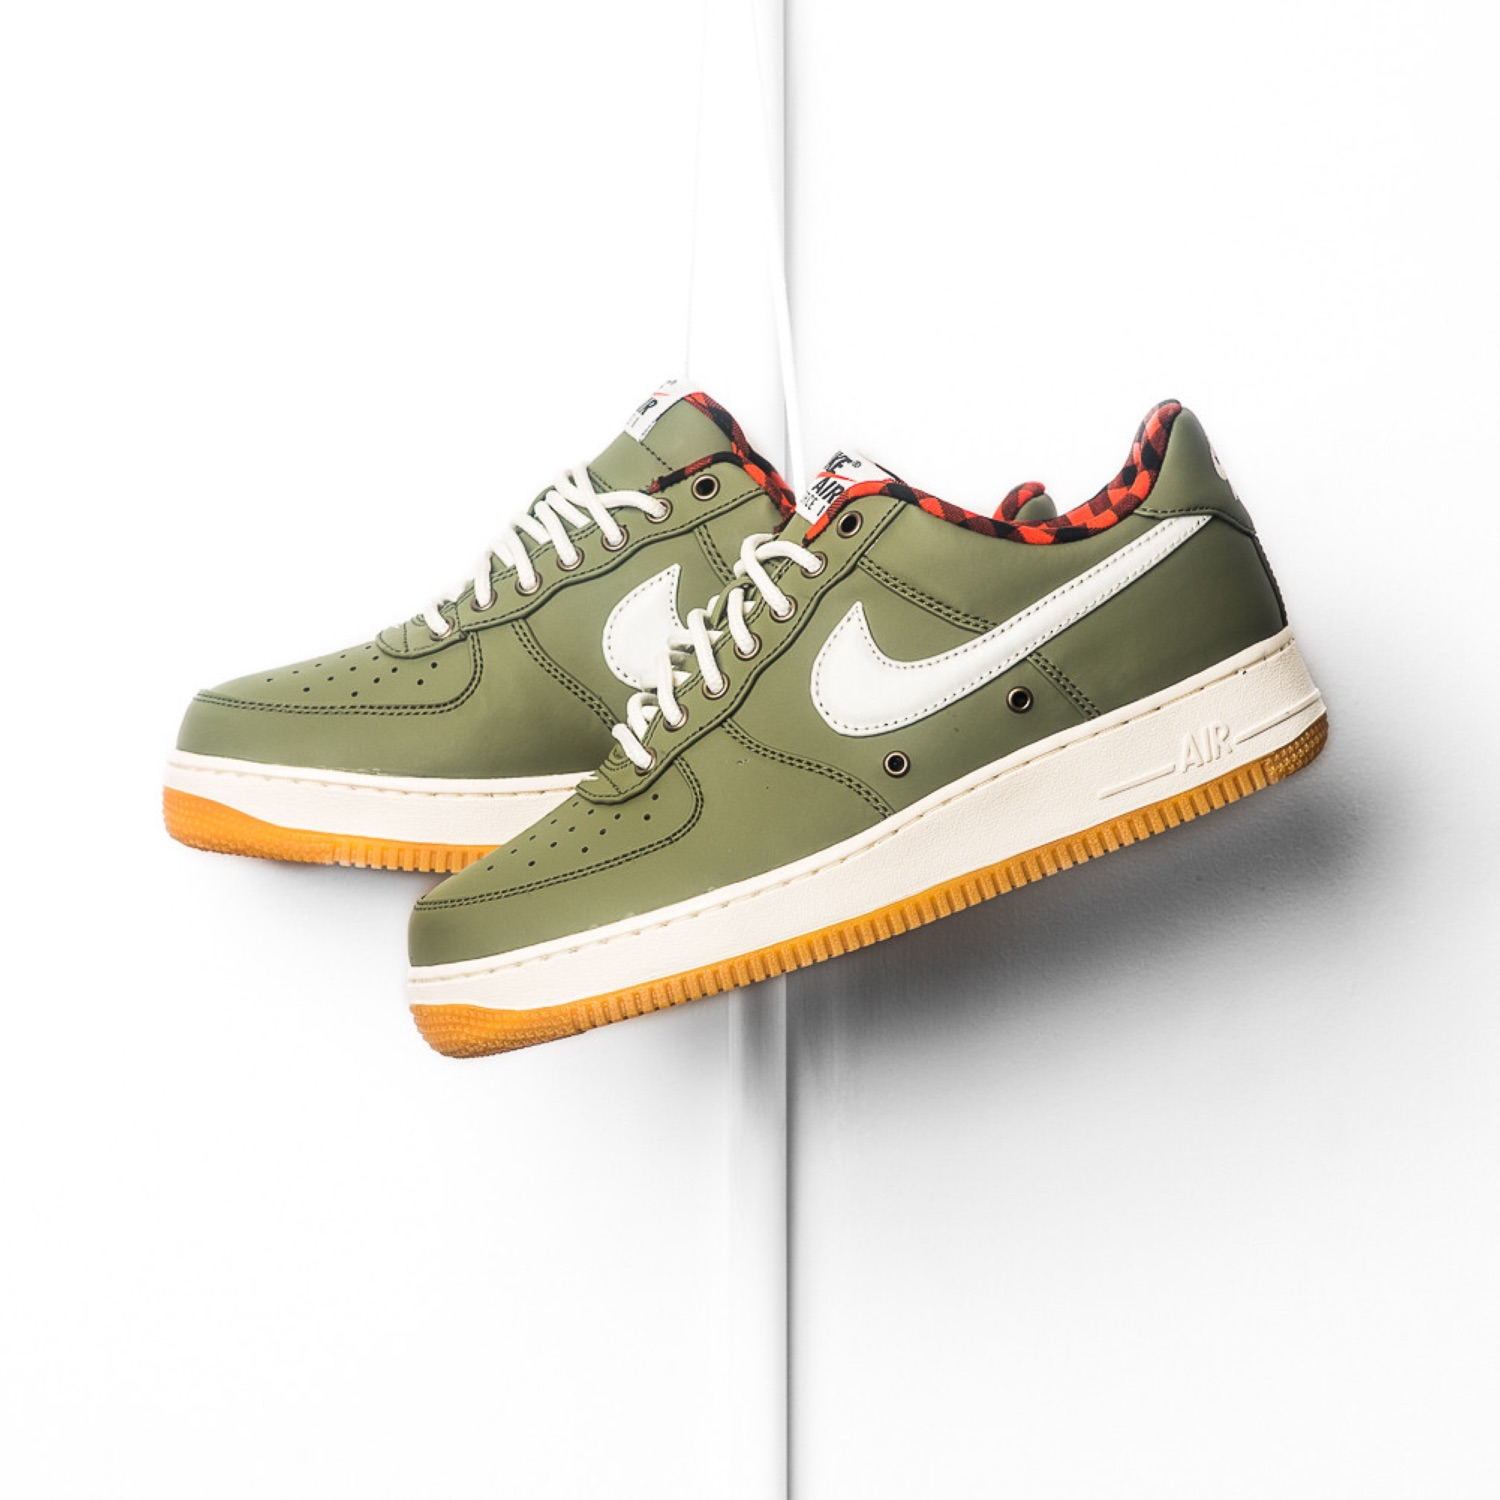 official cheap sale new authentic Nike Air Force 1 Umbrella Pack